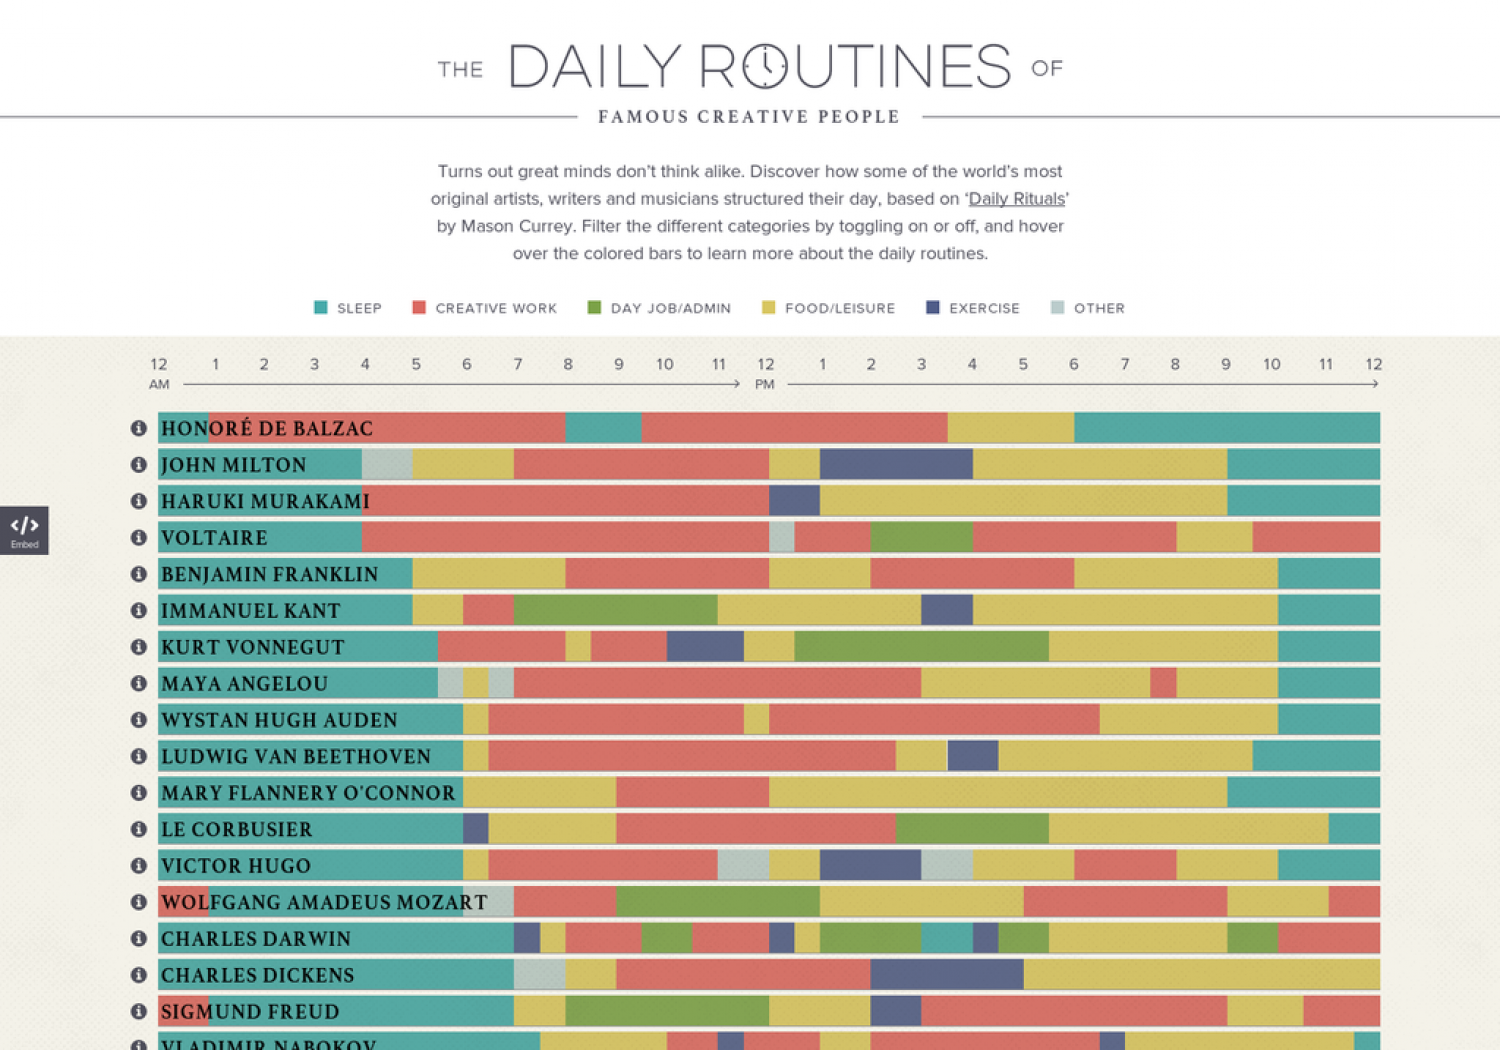 The Daily Routines of Famous Creative People Infographic